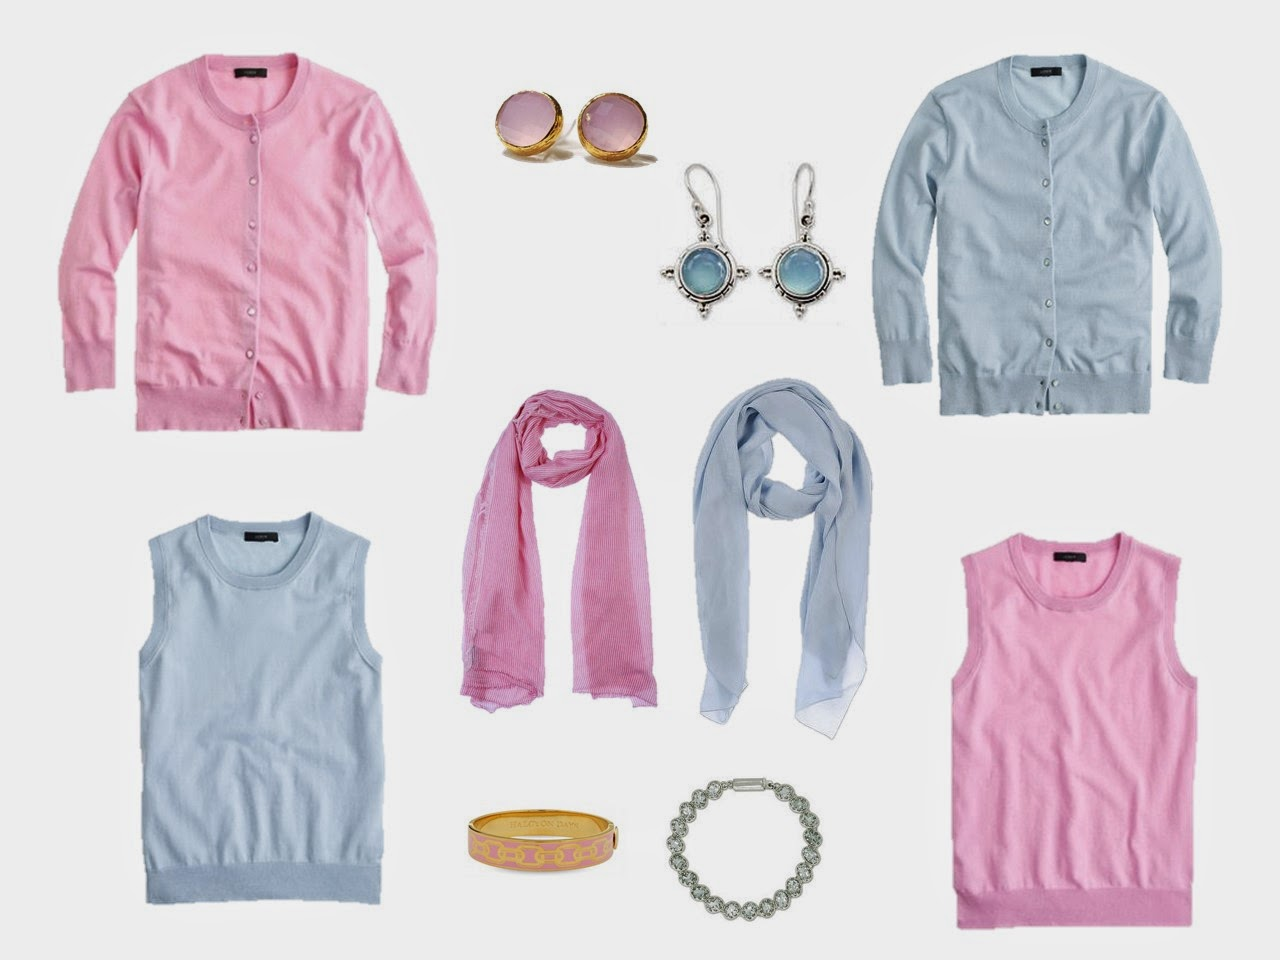 pale pink sweater set and pale blue sweater set with related accessories